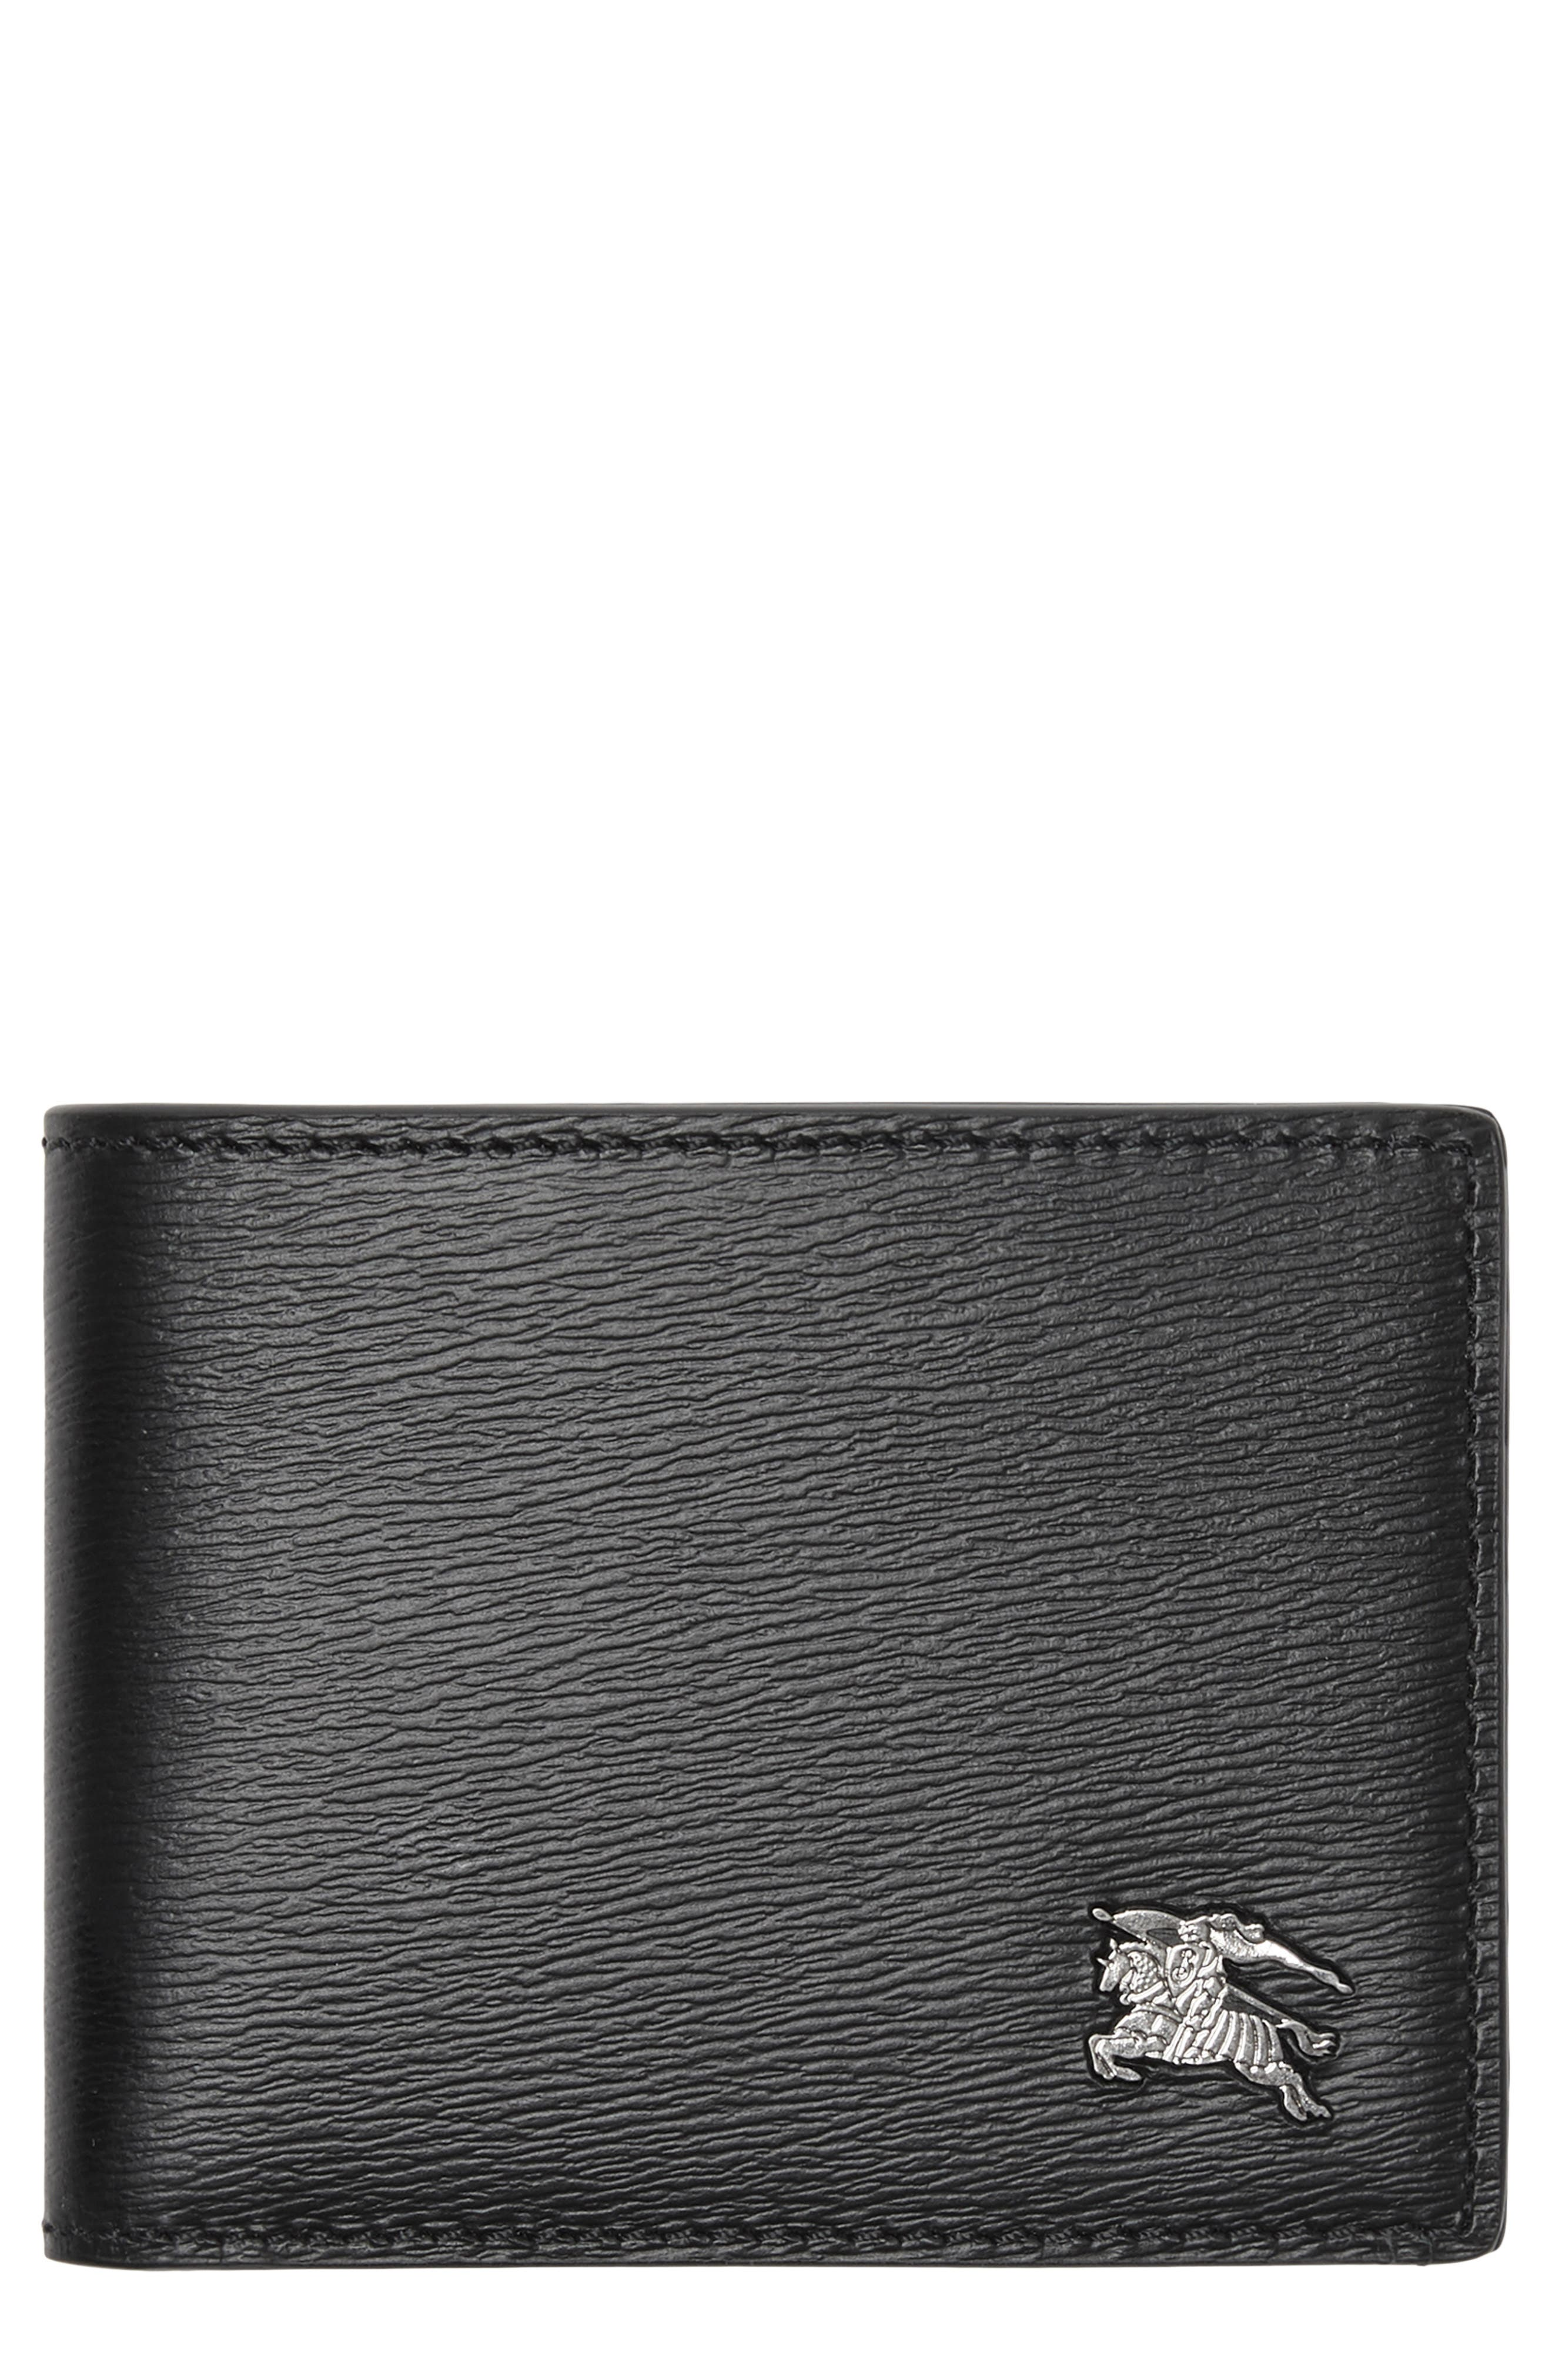 BURBERRY Leather Bifold Wallet, Main, color, 001